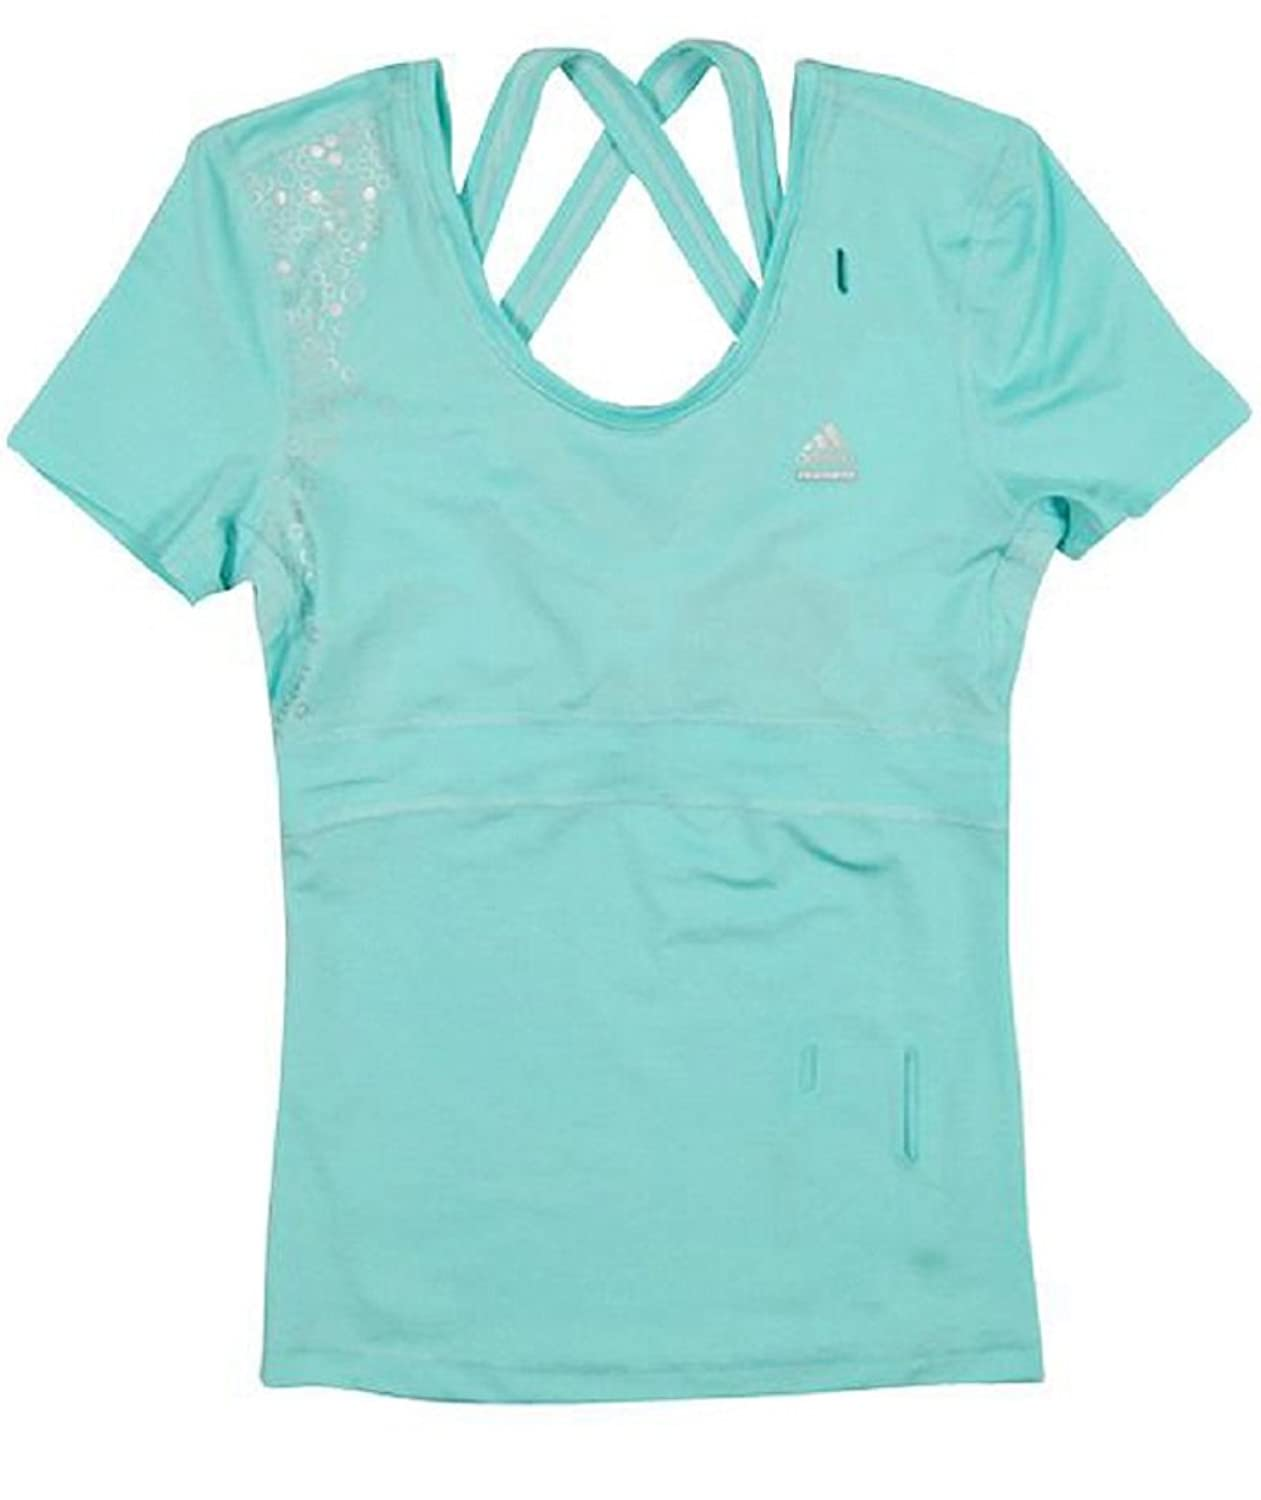 Adidas Performance Women's Fitness Tee with Clima Cool Technology